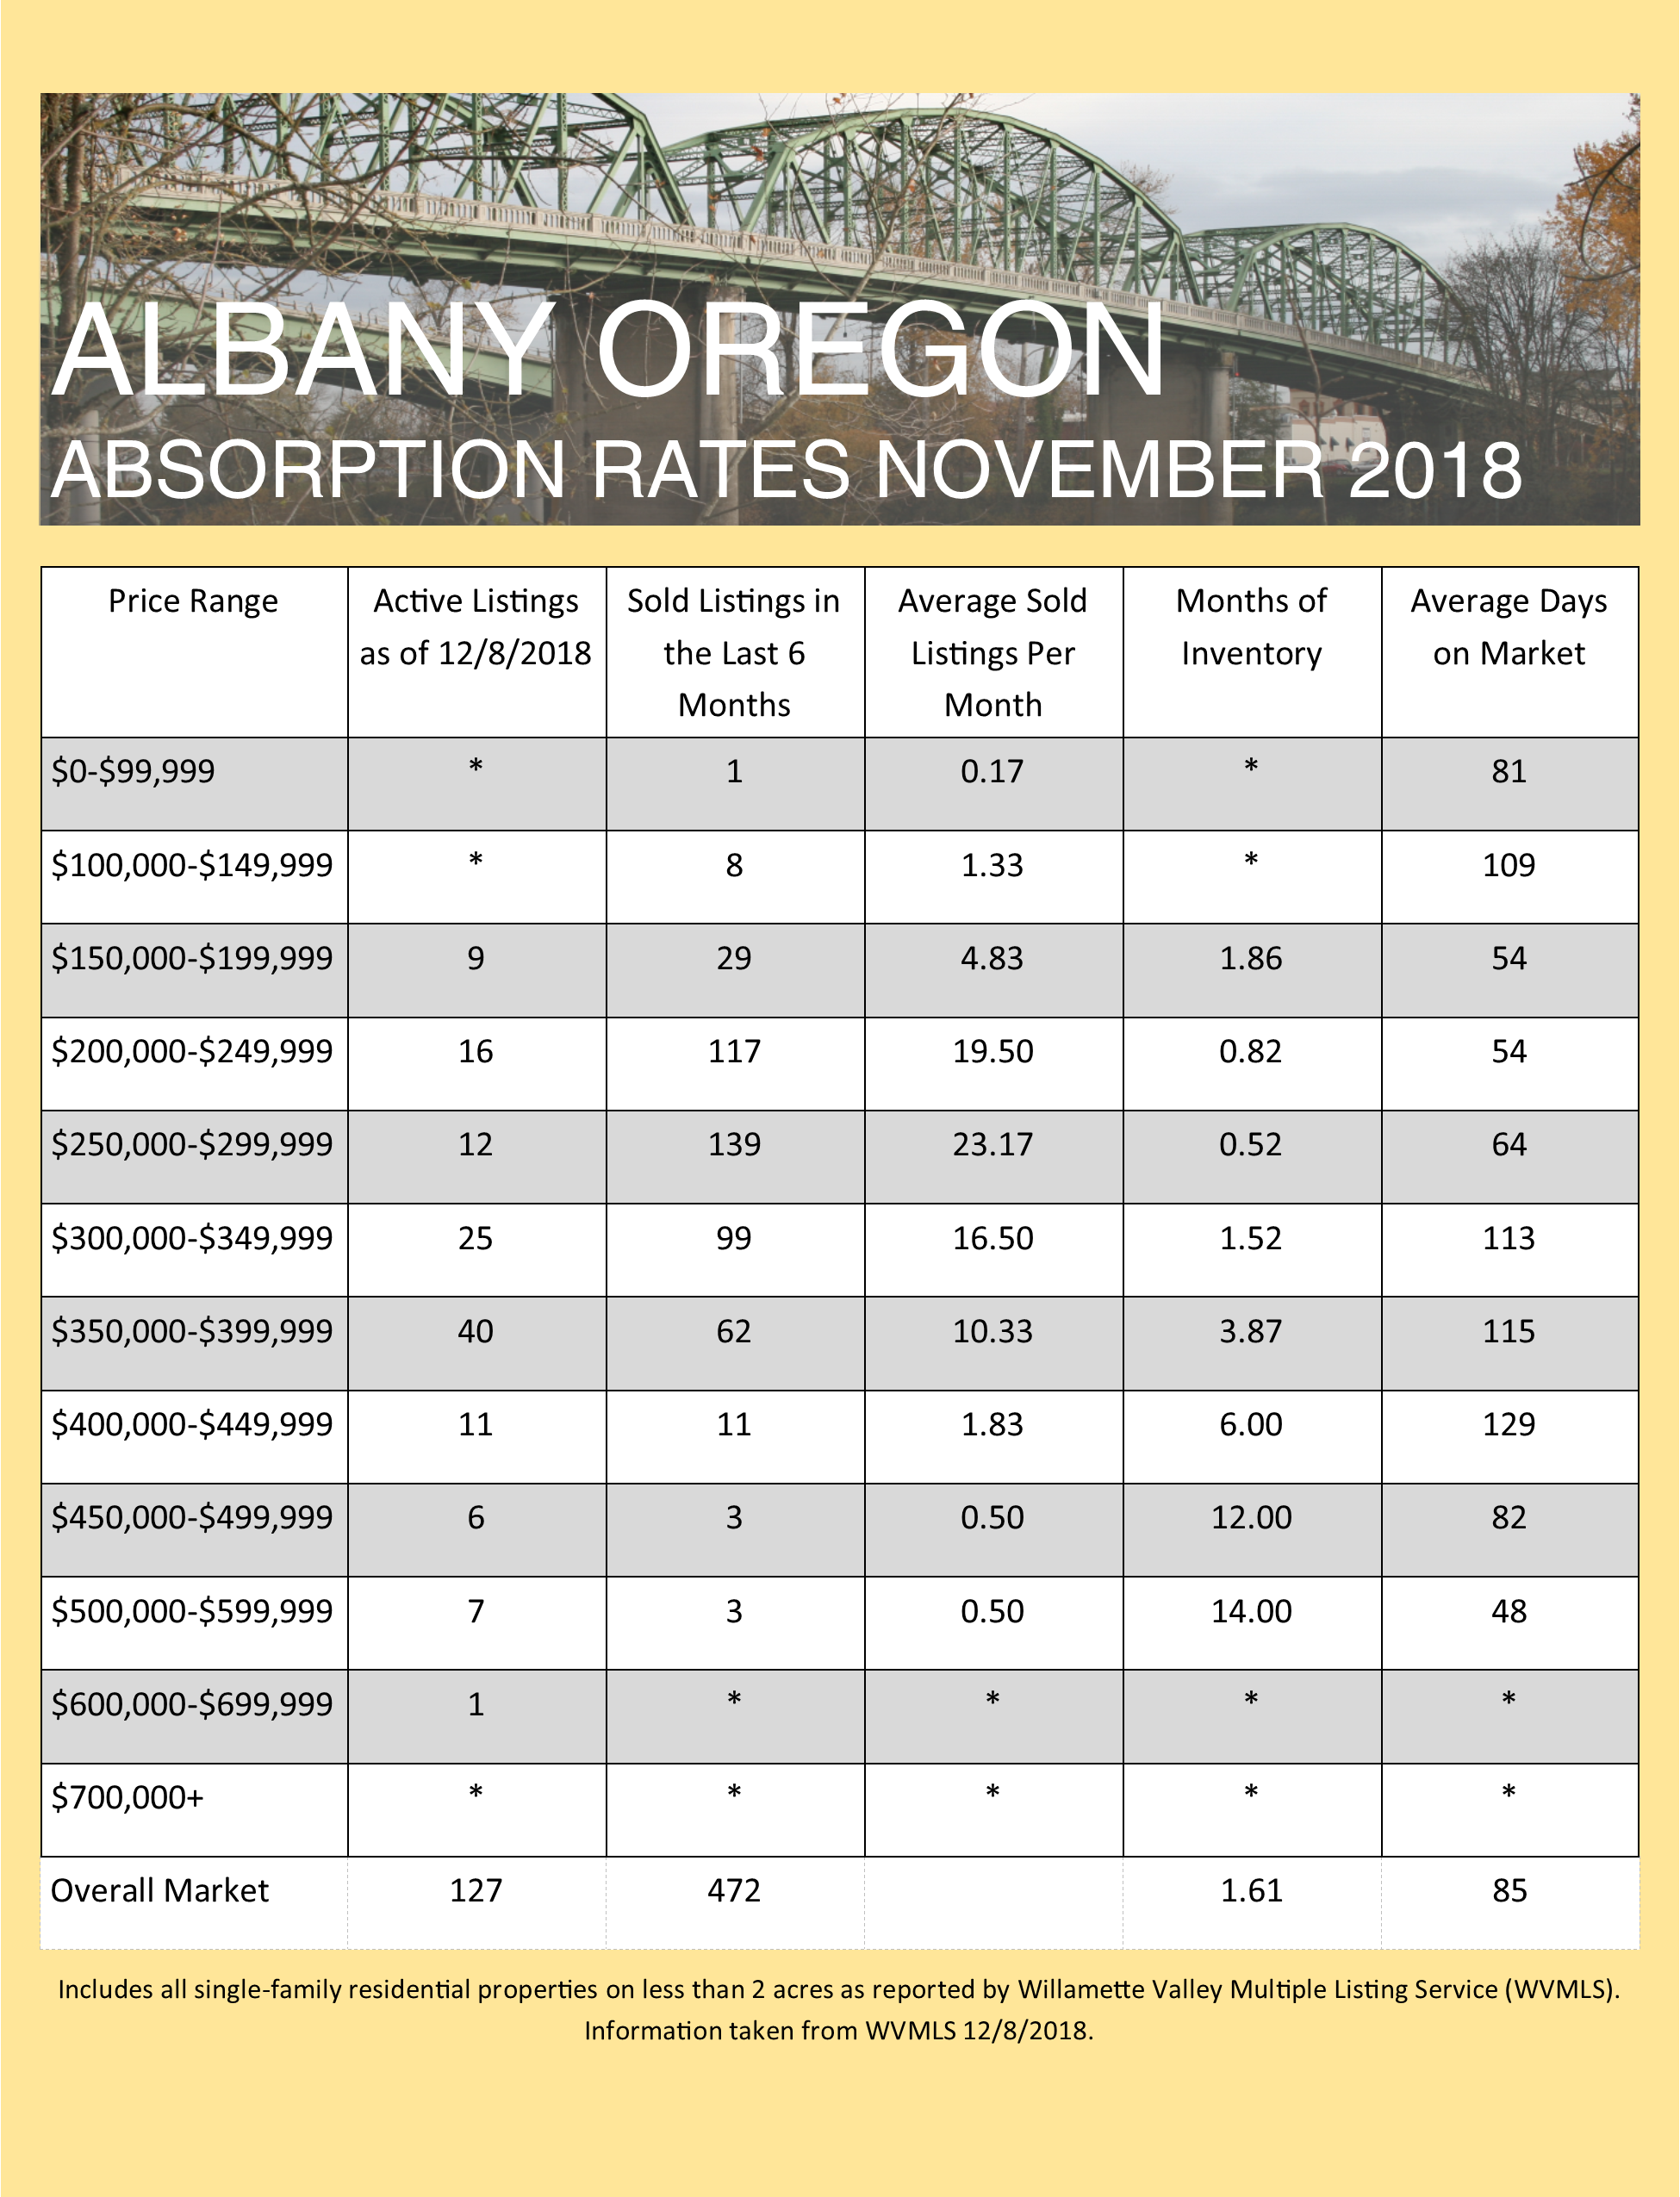 November 2018 Absorption Rates for Albany and Corvallis